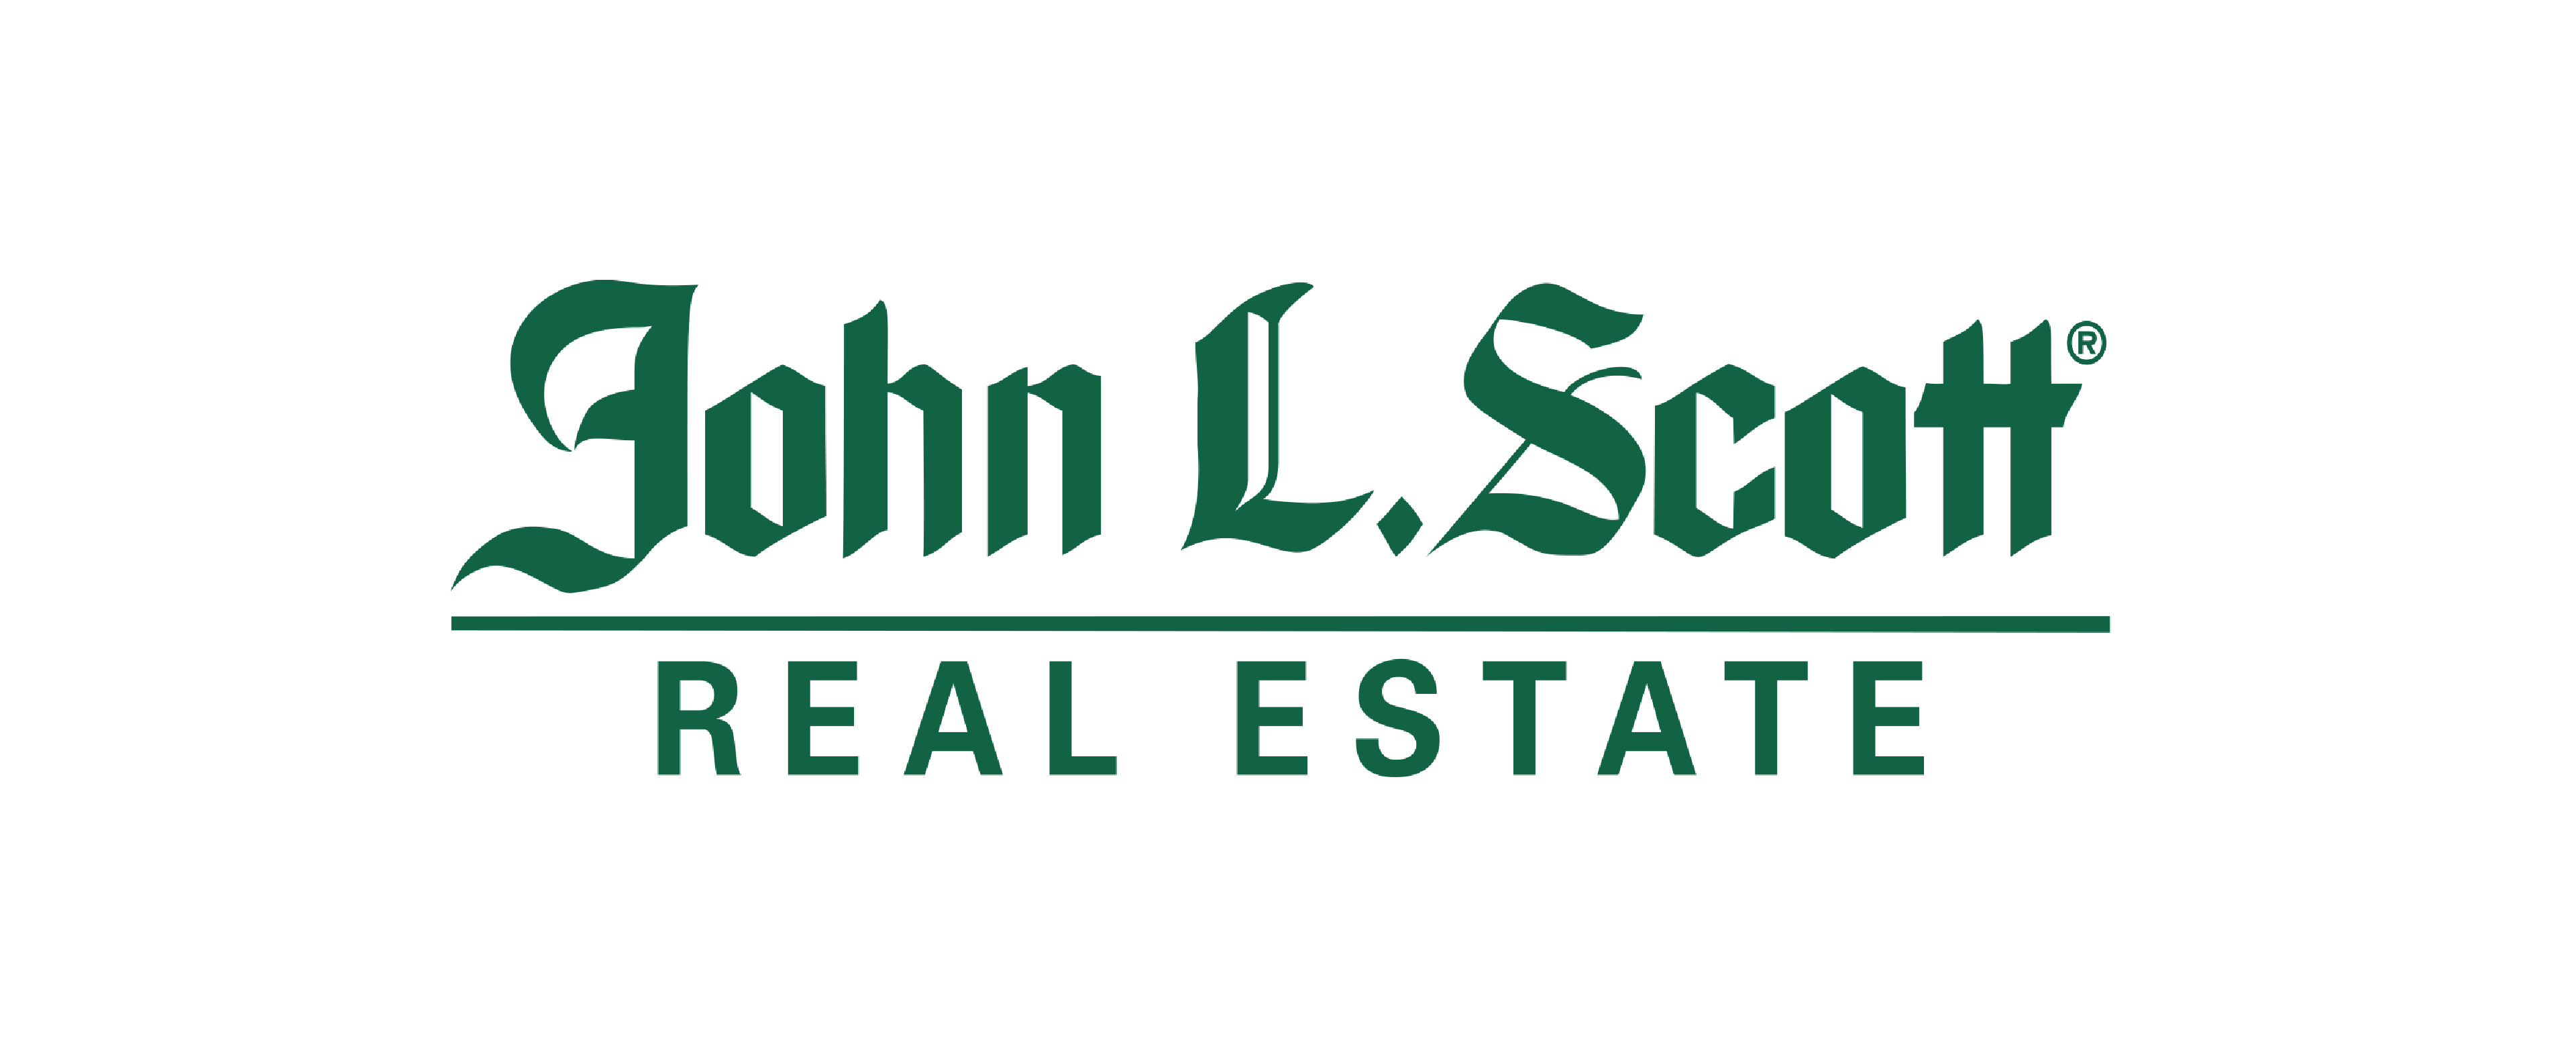 white john l scott logo